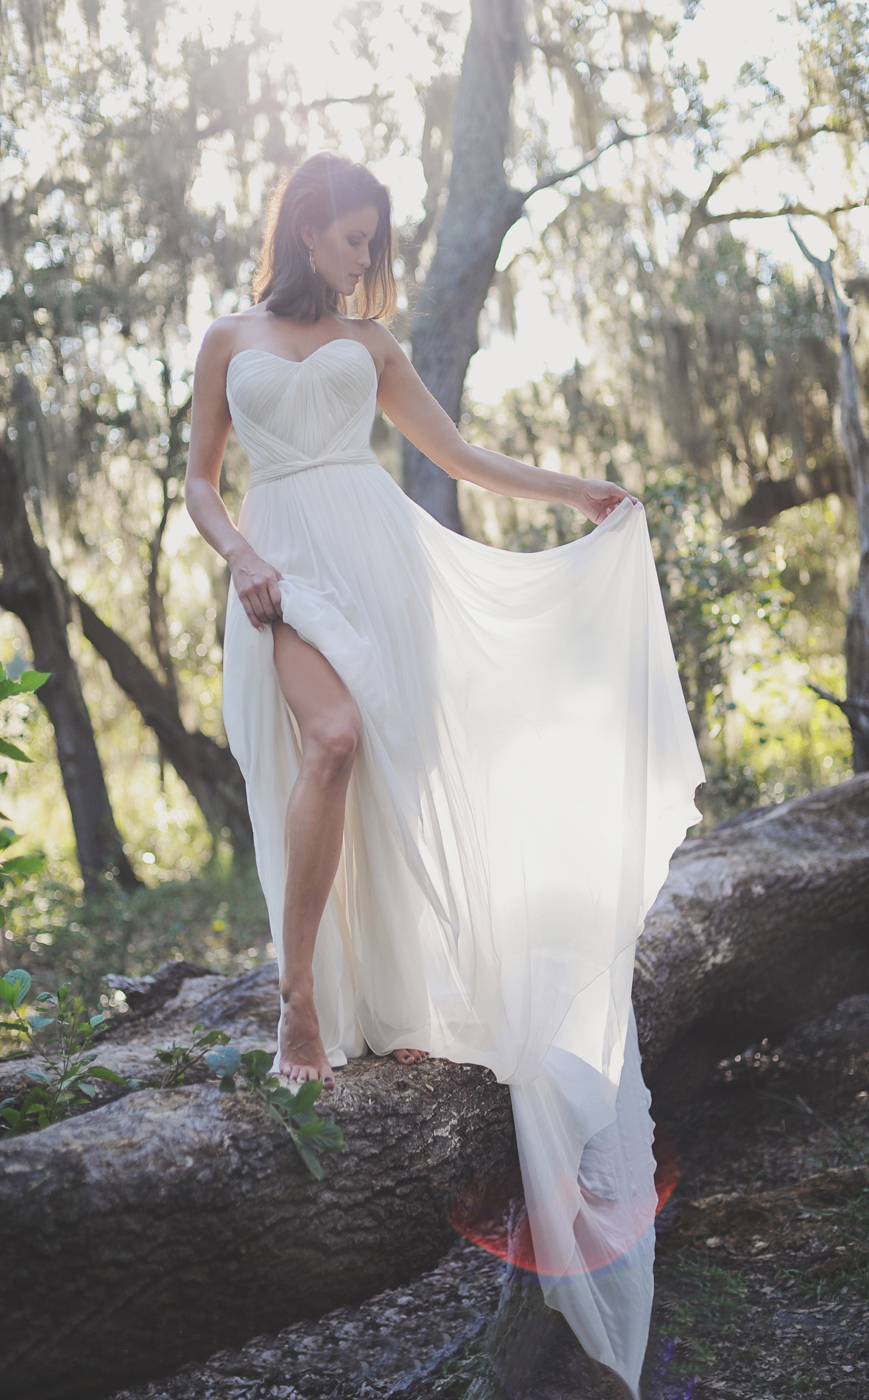 Beach Wedding Dresses Size 16 : Chiffon beach wedding dresses bridal gown size